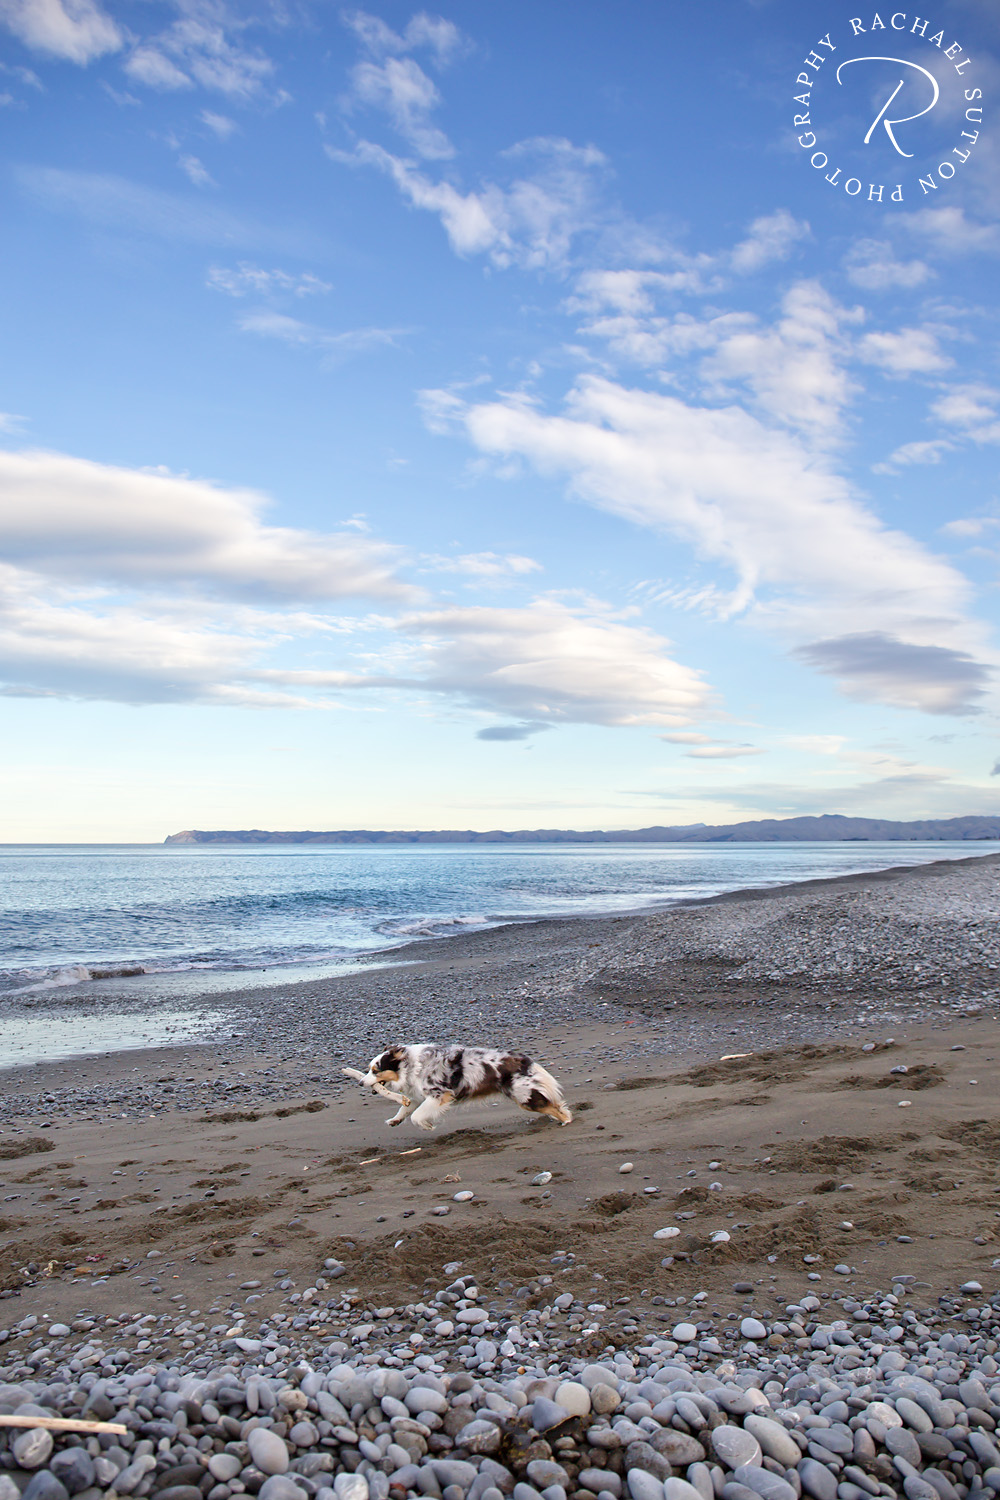 Rarangi Beach, Blenheim dog walking adventures, Rachael Sutton Photography, New Zealand pet photography